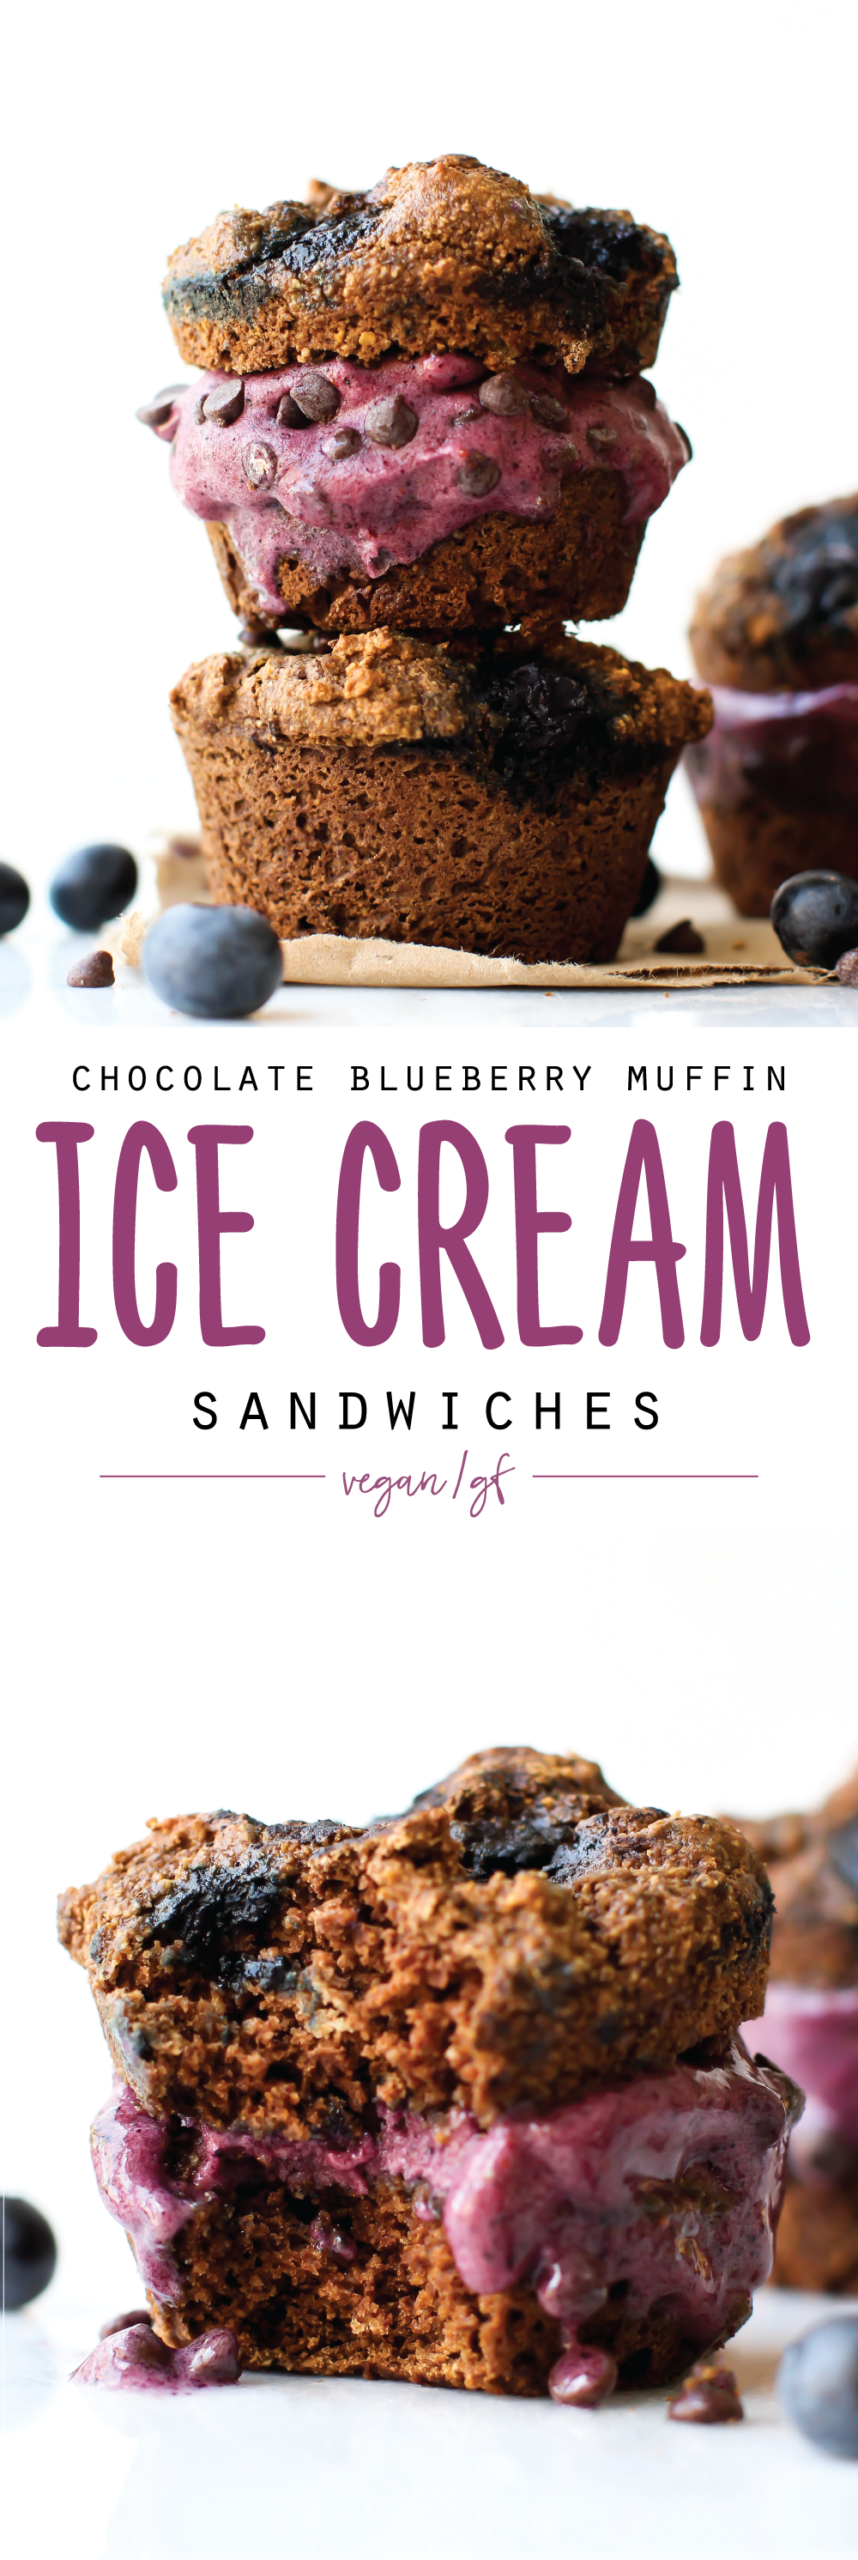 Blueberry muffins are good, but CHOCOLATE blueberry muffins turned nicecream sandwich are a whole different extra delicious story! Get the recipe plus 6 other vegan summer blueberry recipes.